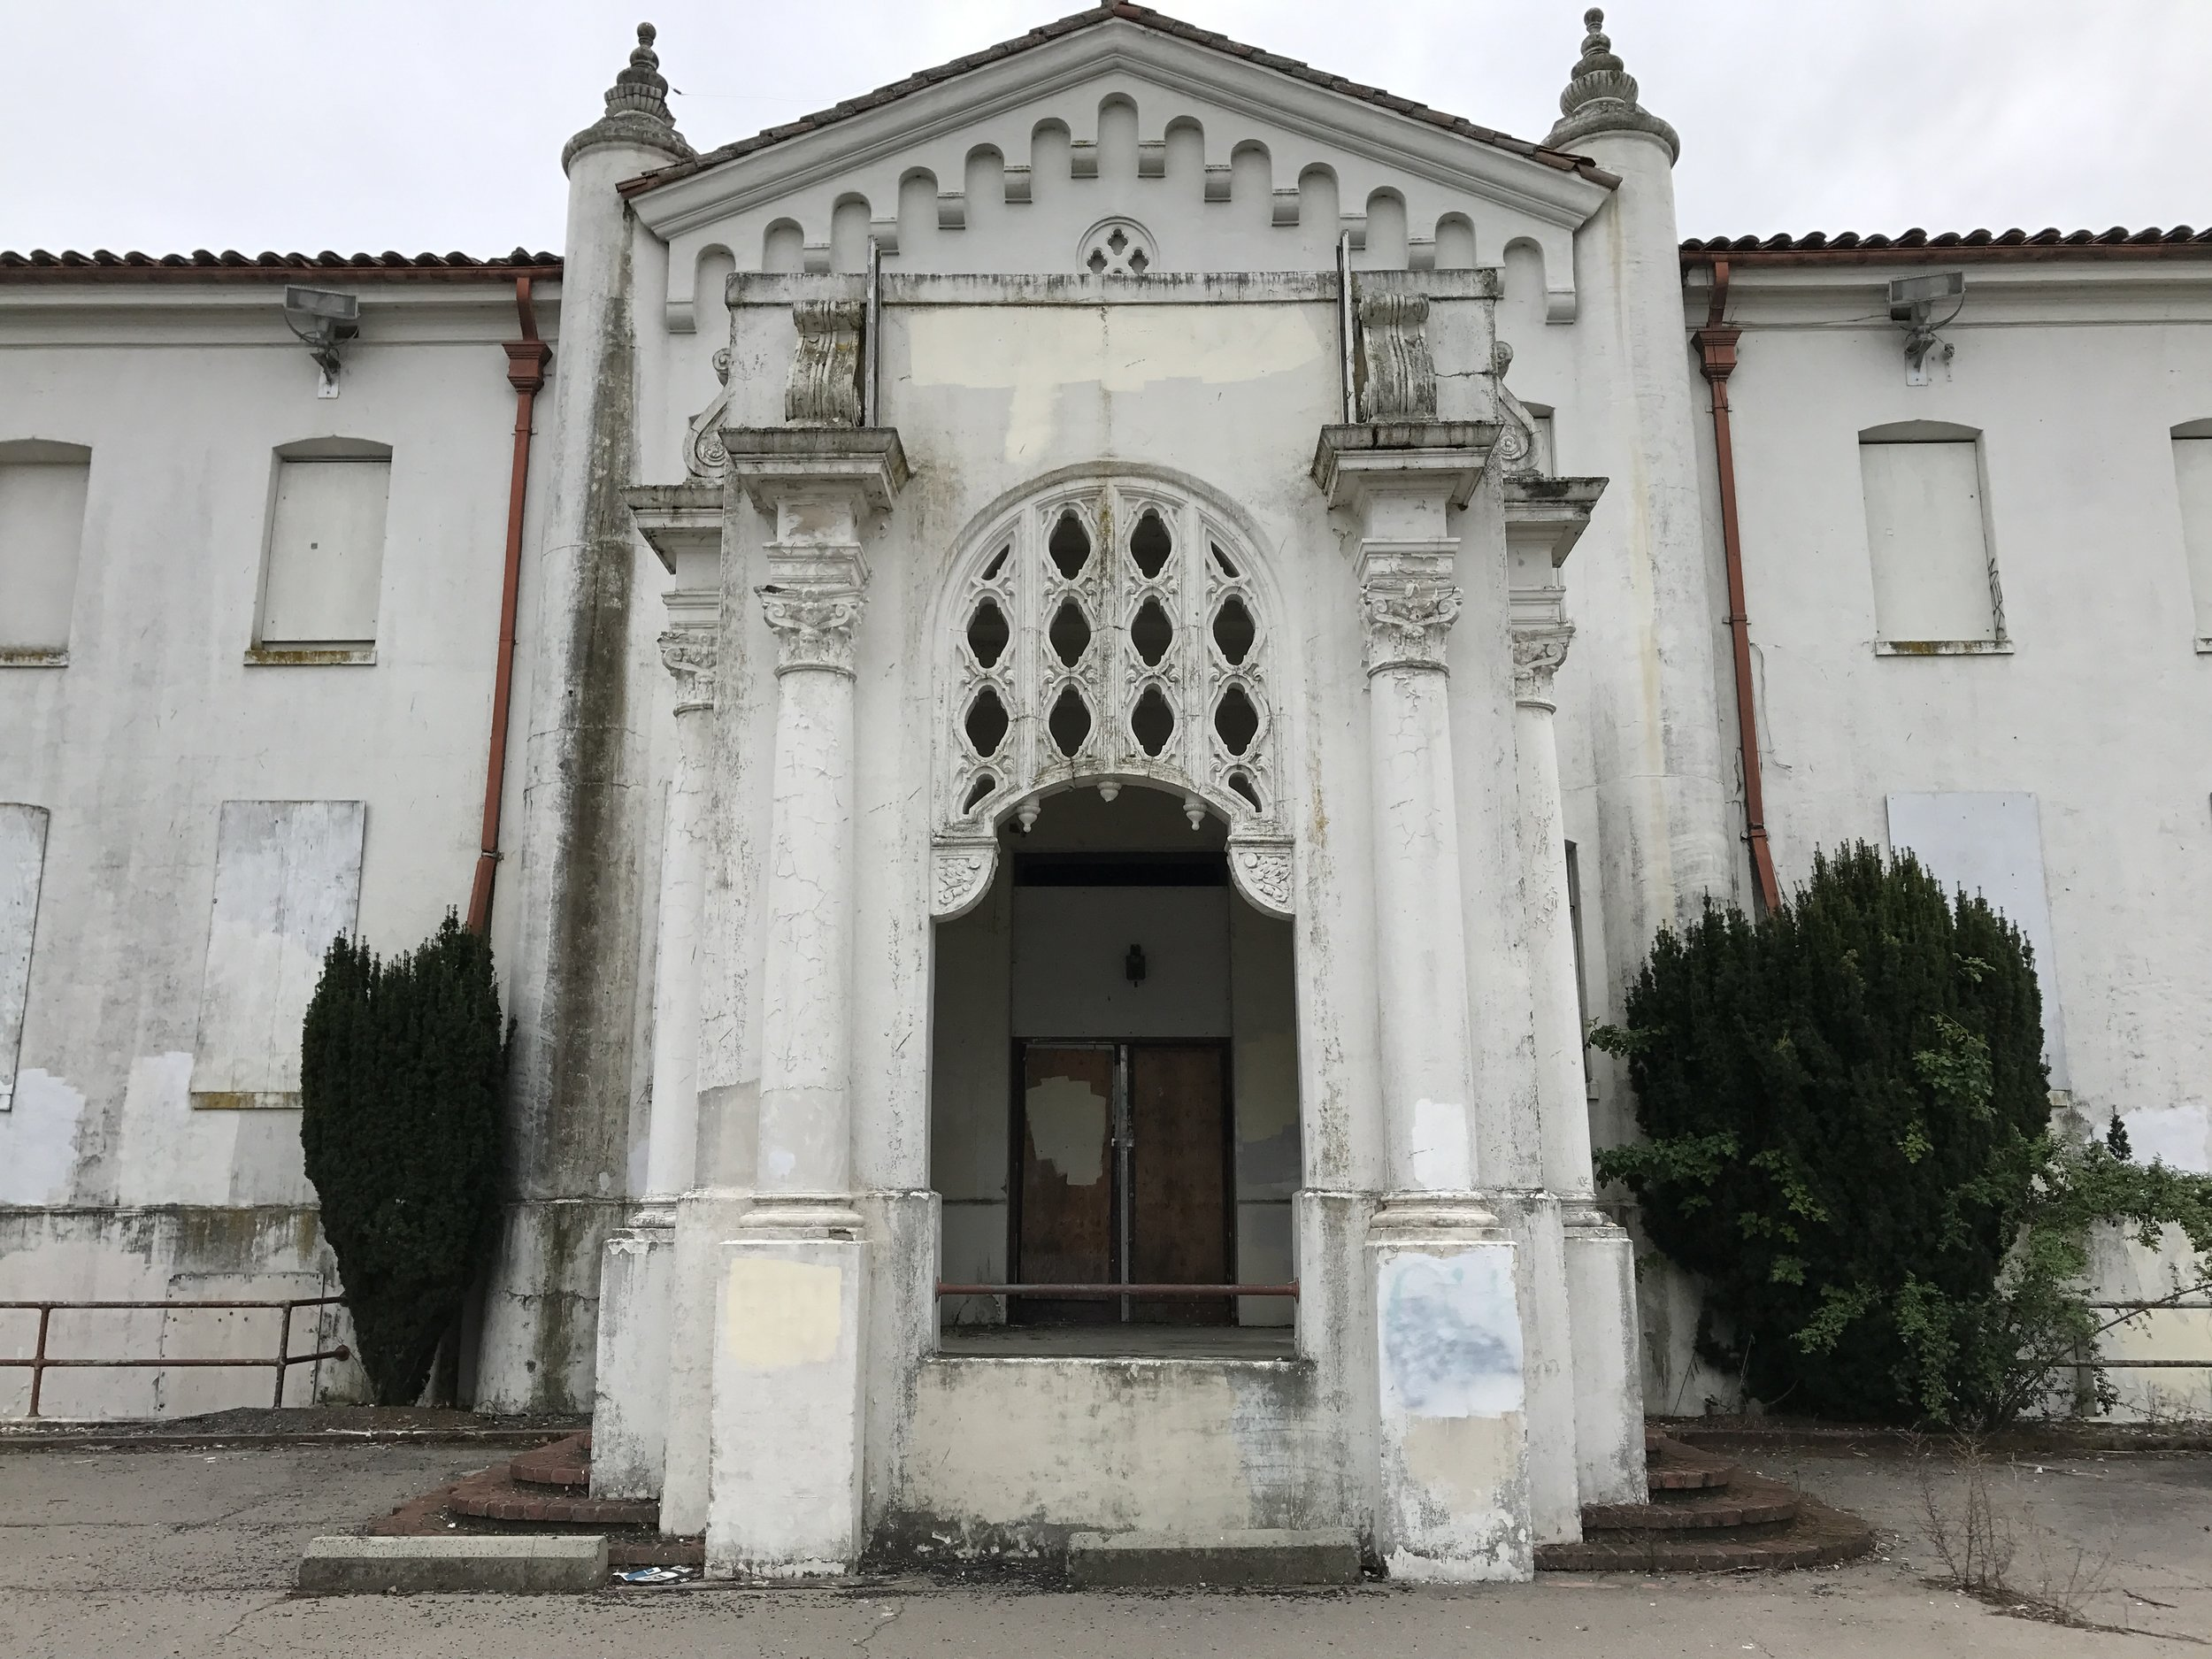 Look at this beautiful creature! Long neglected but never forgotten, this beautiful building is close to our home on a Military base that is no longer operational. We love going up to this area for family walks and to marvel at the buildings that have been decomissioned!